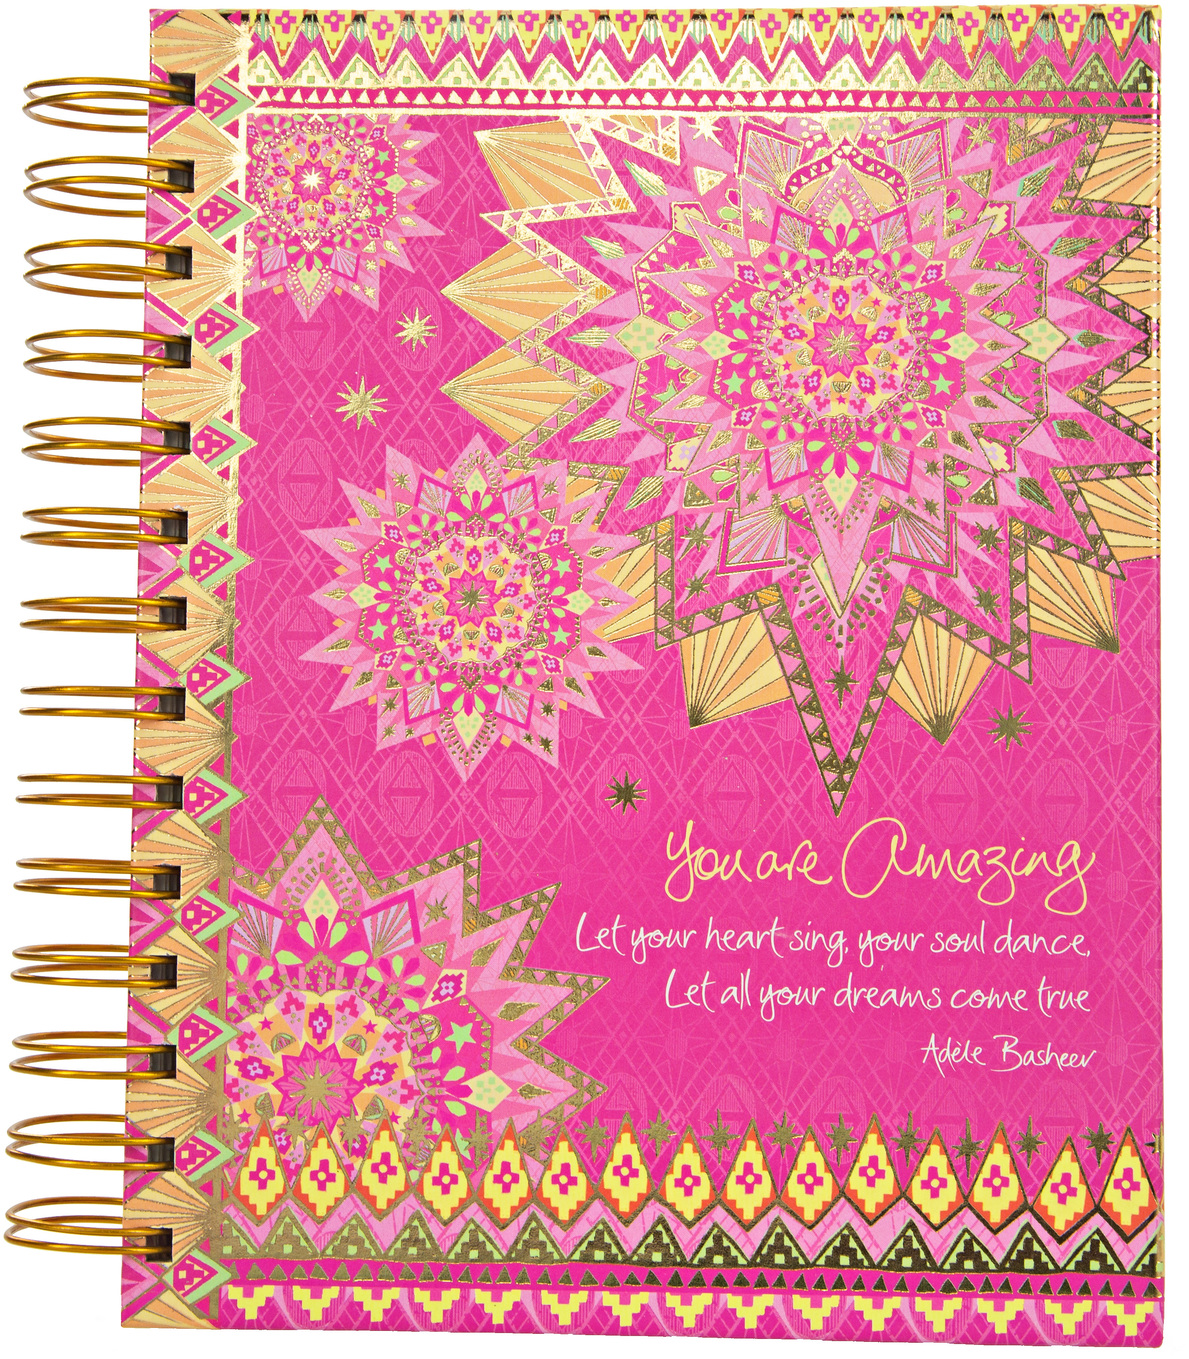 "You Are Amazing by Intrinsic - You Are Amazing - 7.5"" x 6.5"" Spiral Notebook"